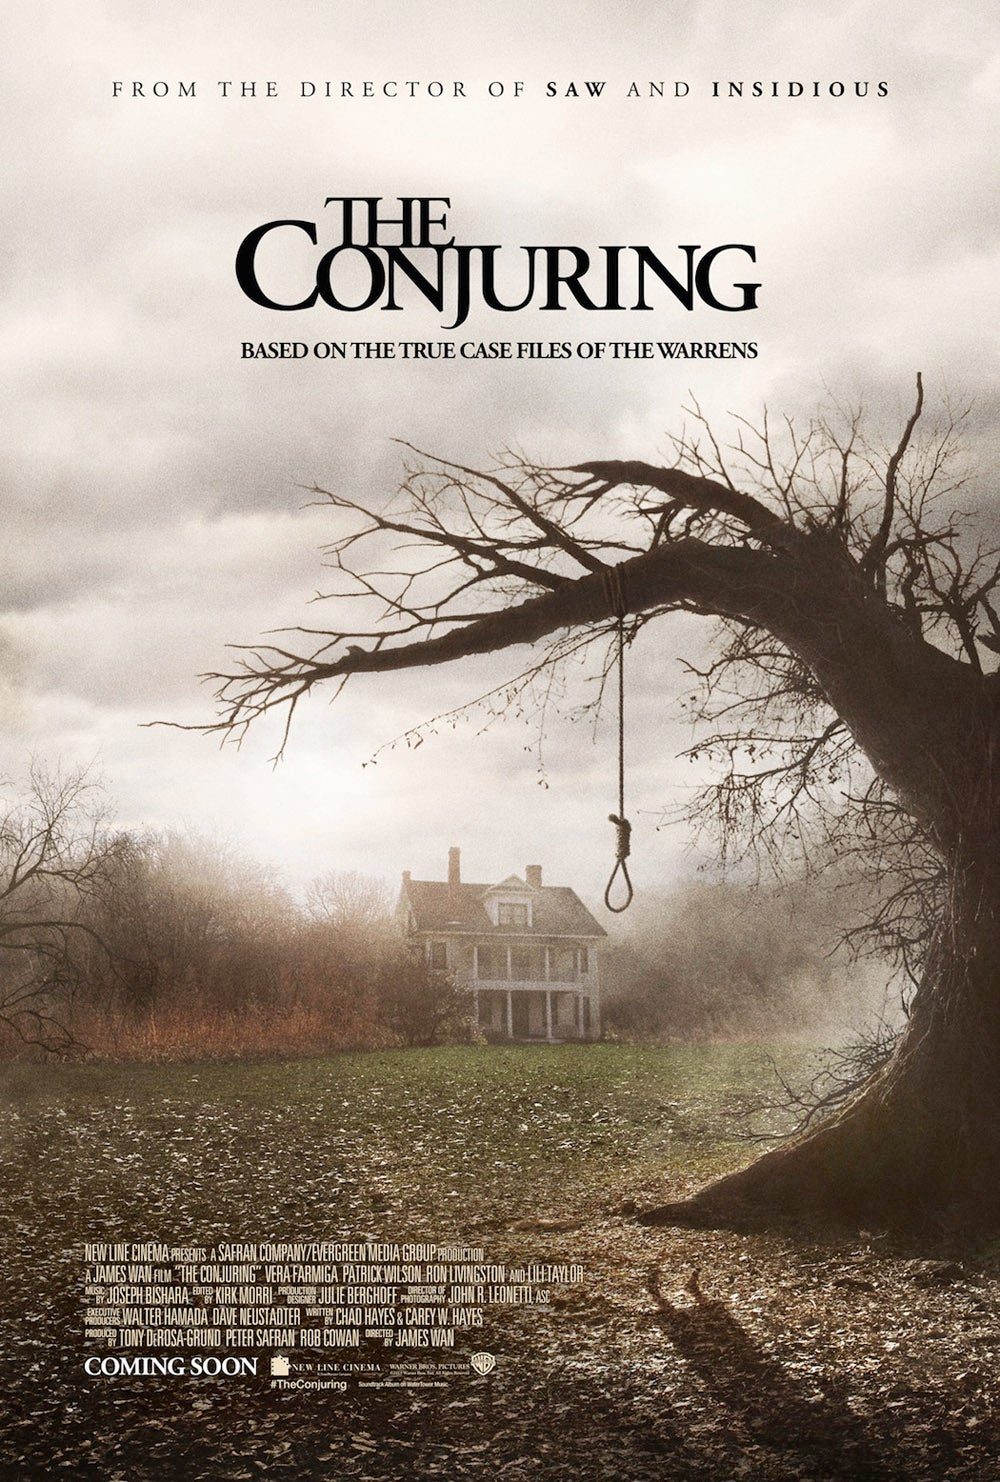 https://i2.wp.com/media.comicbook.com/wp-content/uploads/2013/07/the-conjuring-poster.jpg